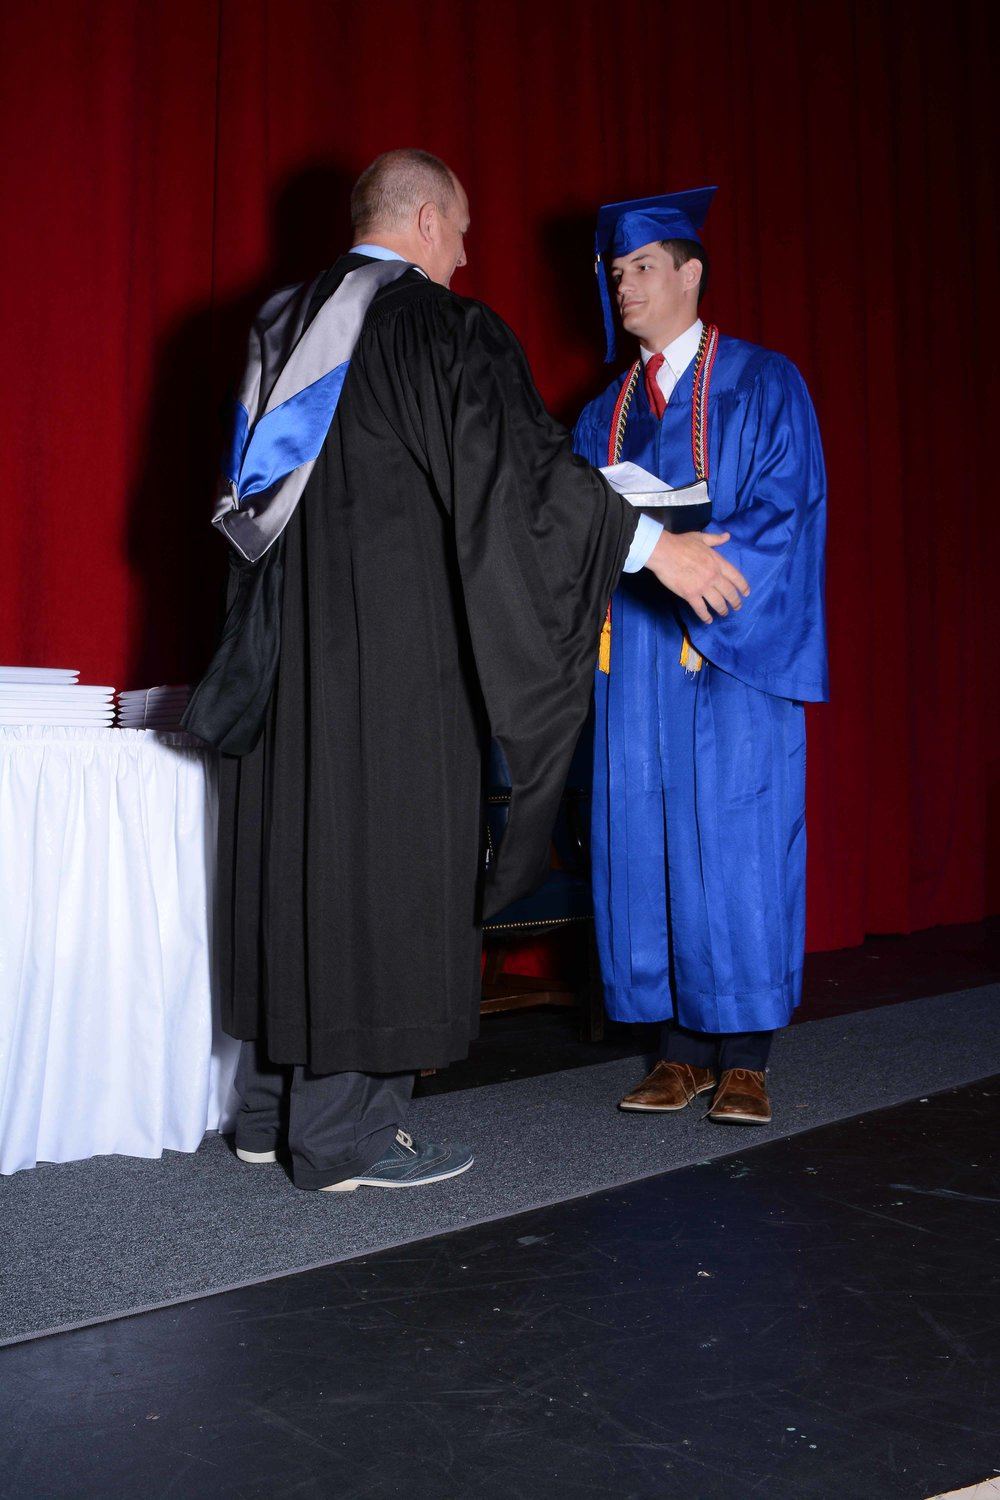 May14 Commencement133.jpg